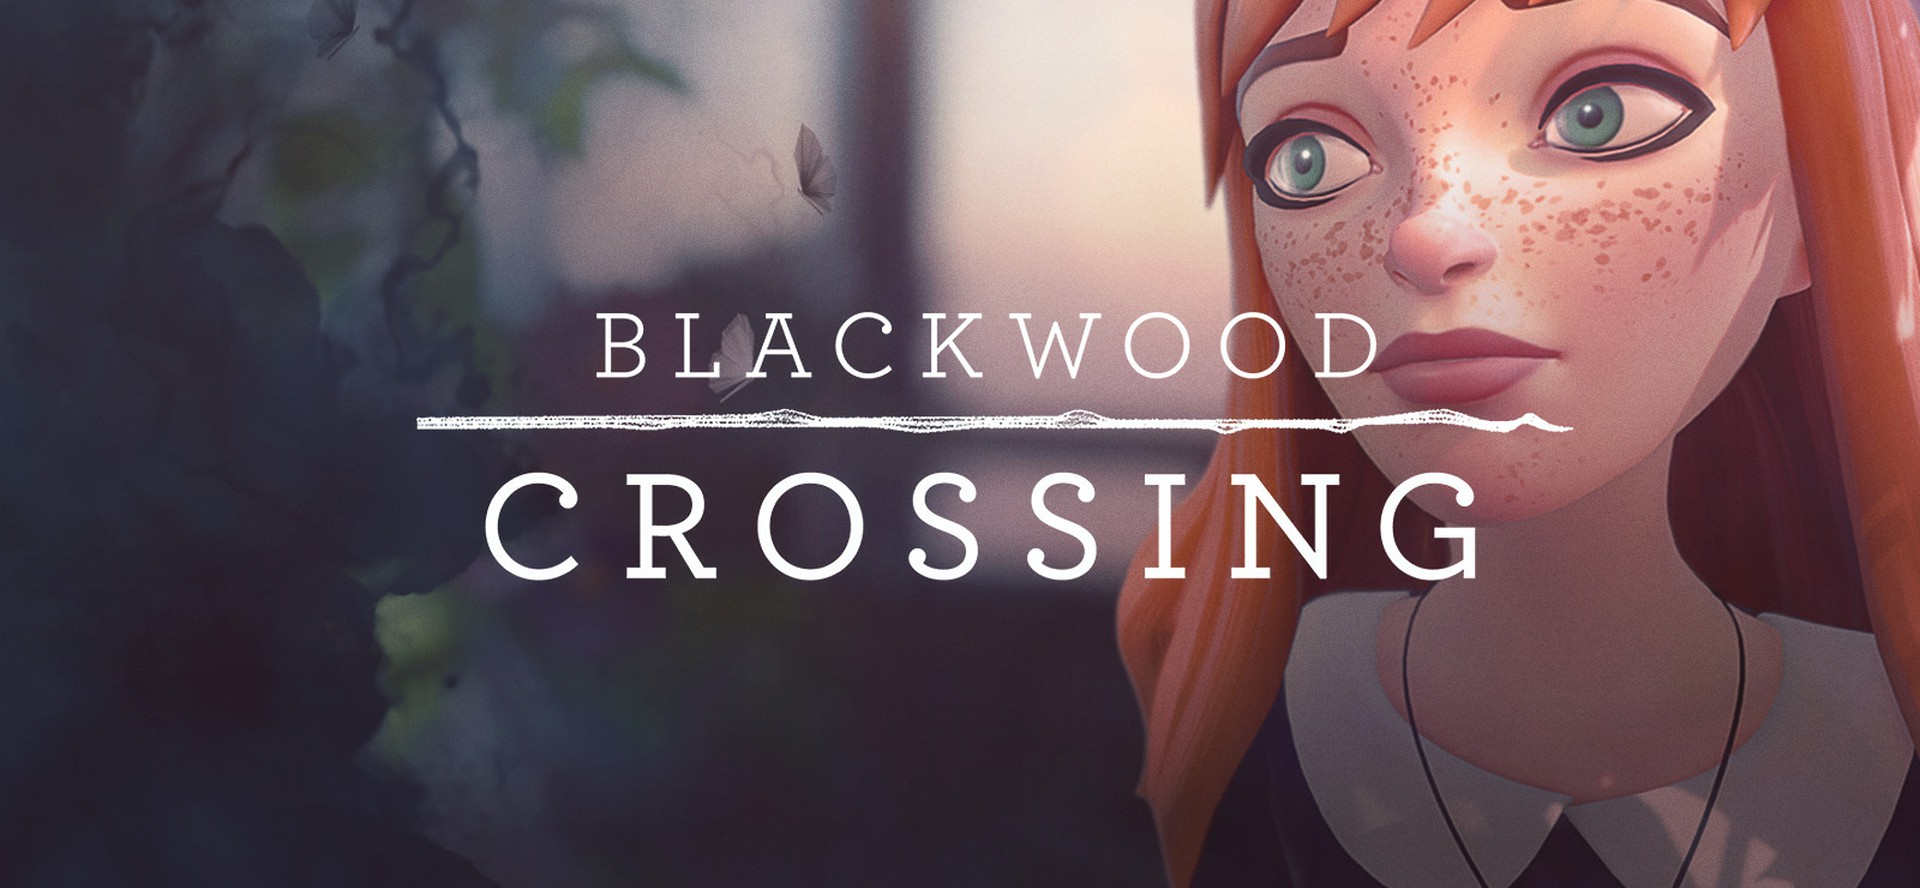 Blackwood Crossing Video